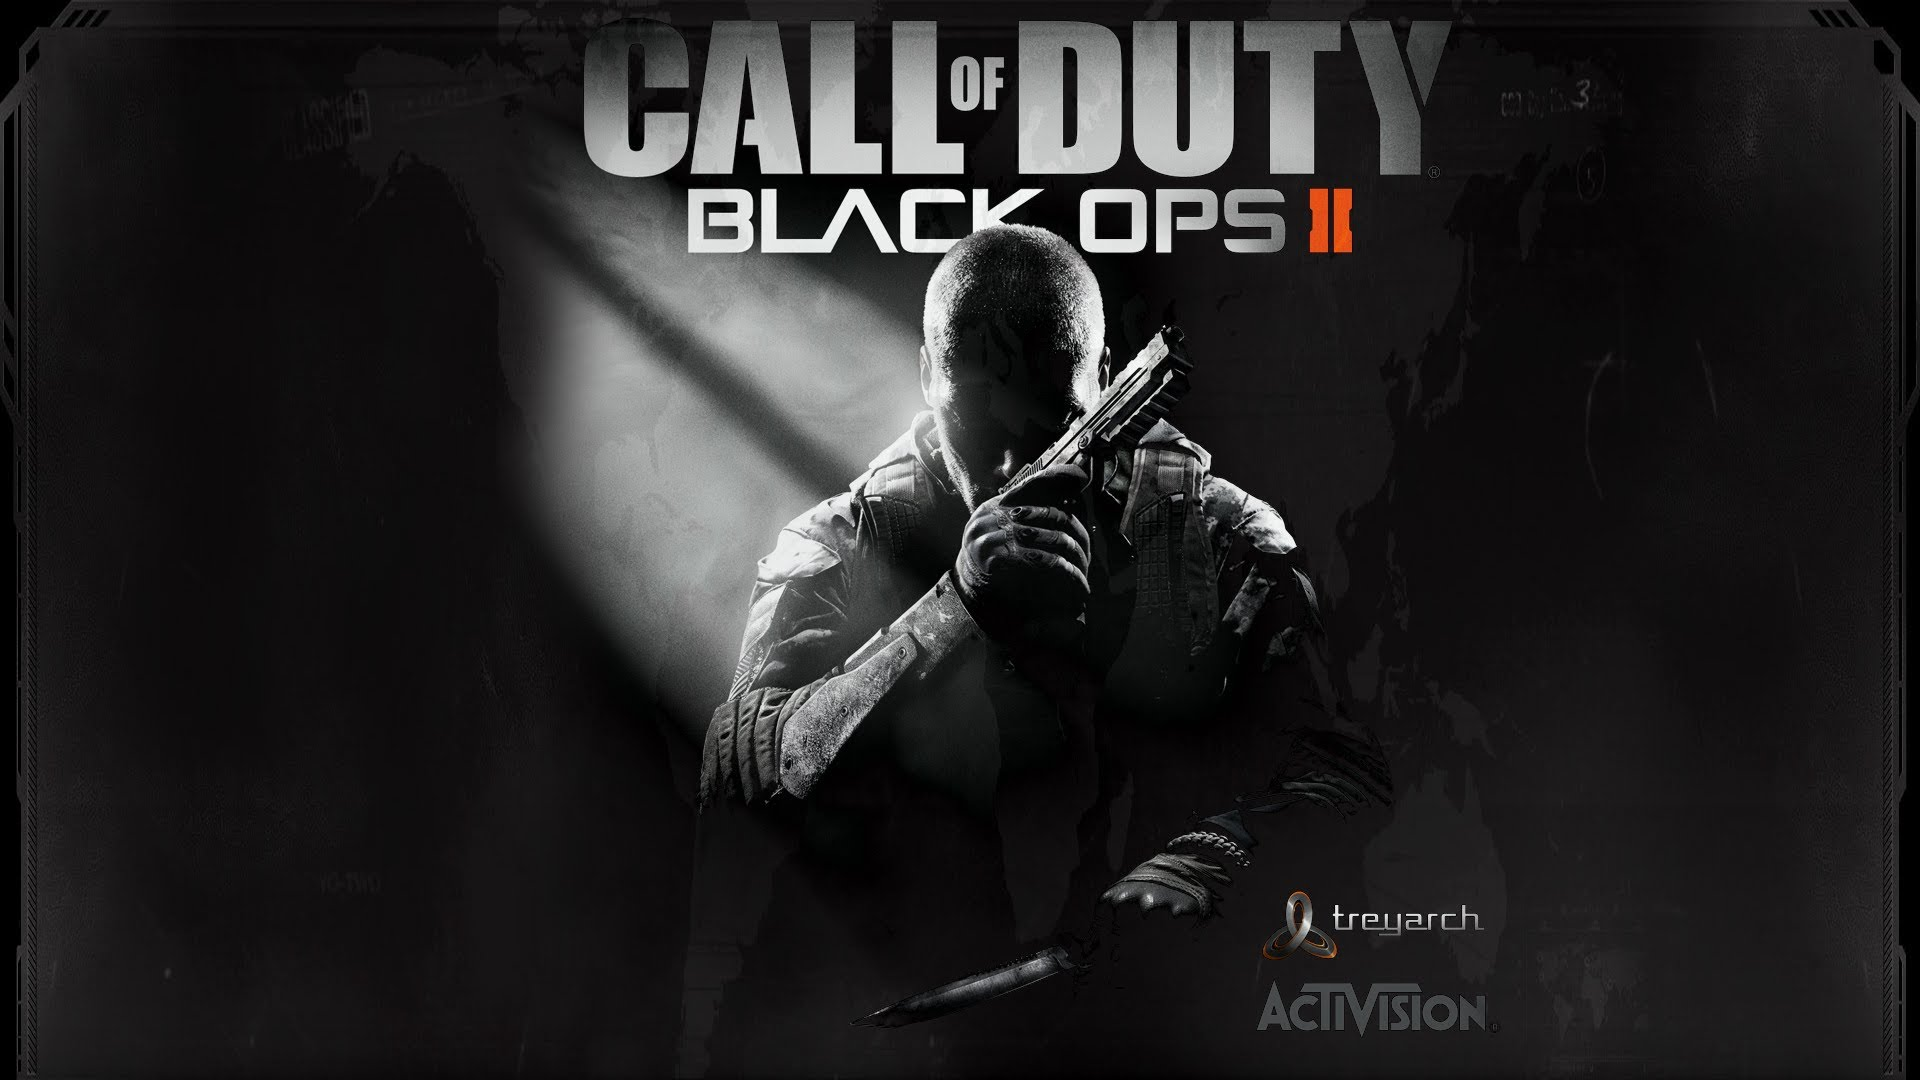 Call Of Duty BO2 1 GameplayMission 1920x1080